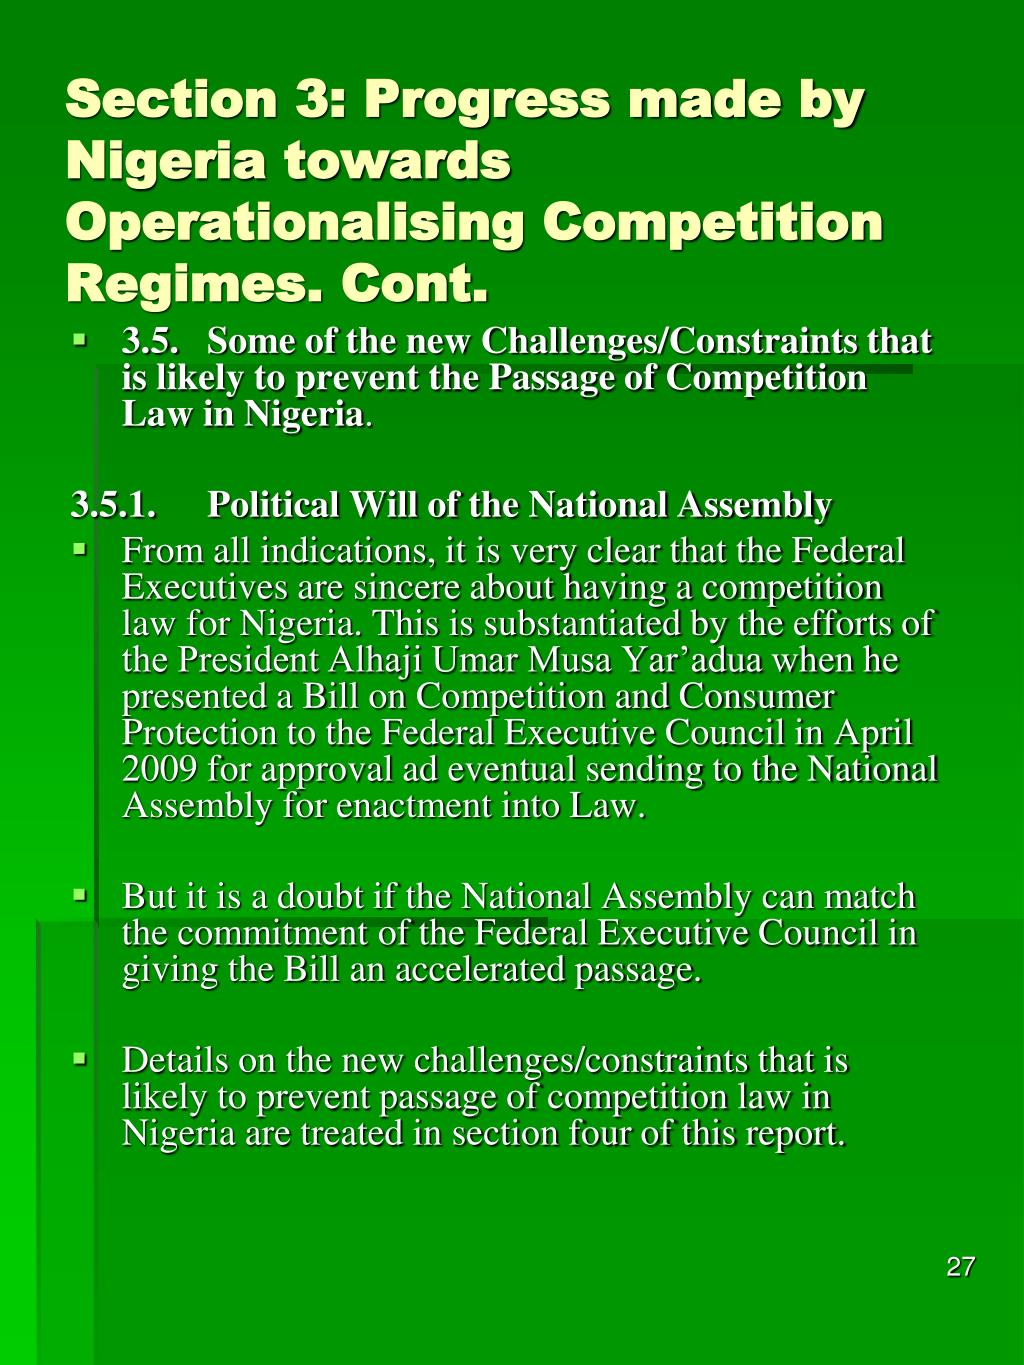 Section 3: Progress made by Nigeria towards Operationalising Competition Regimes. Cont.